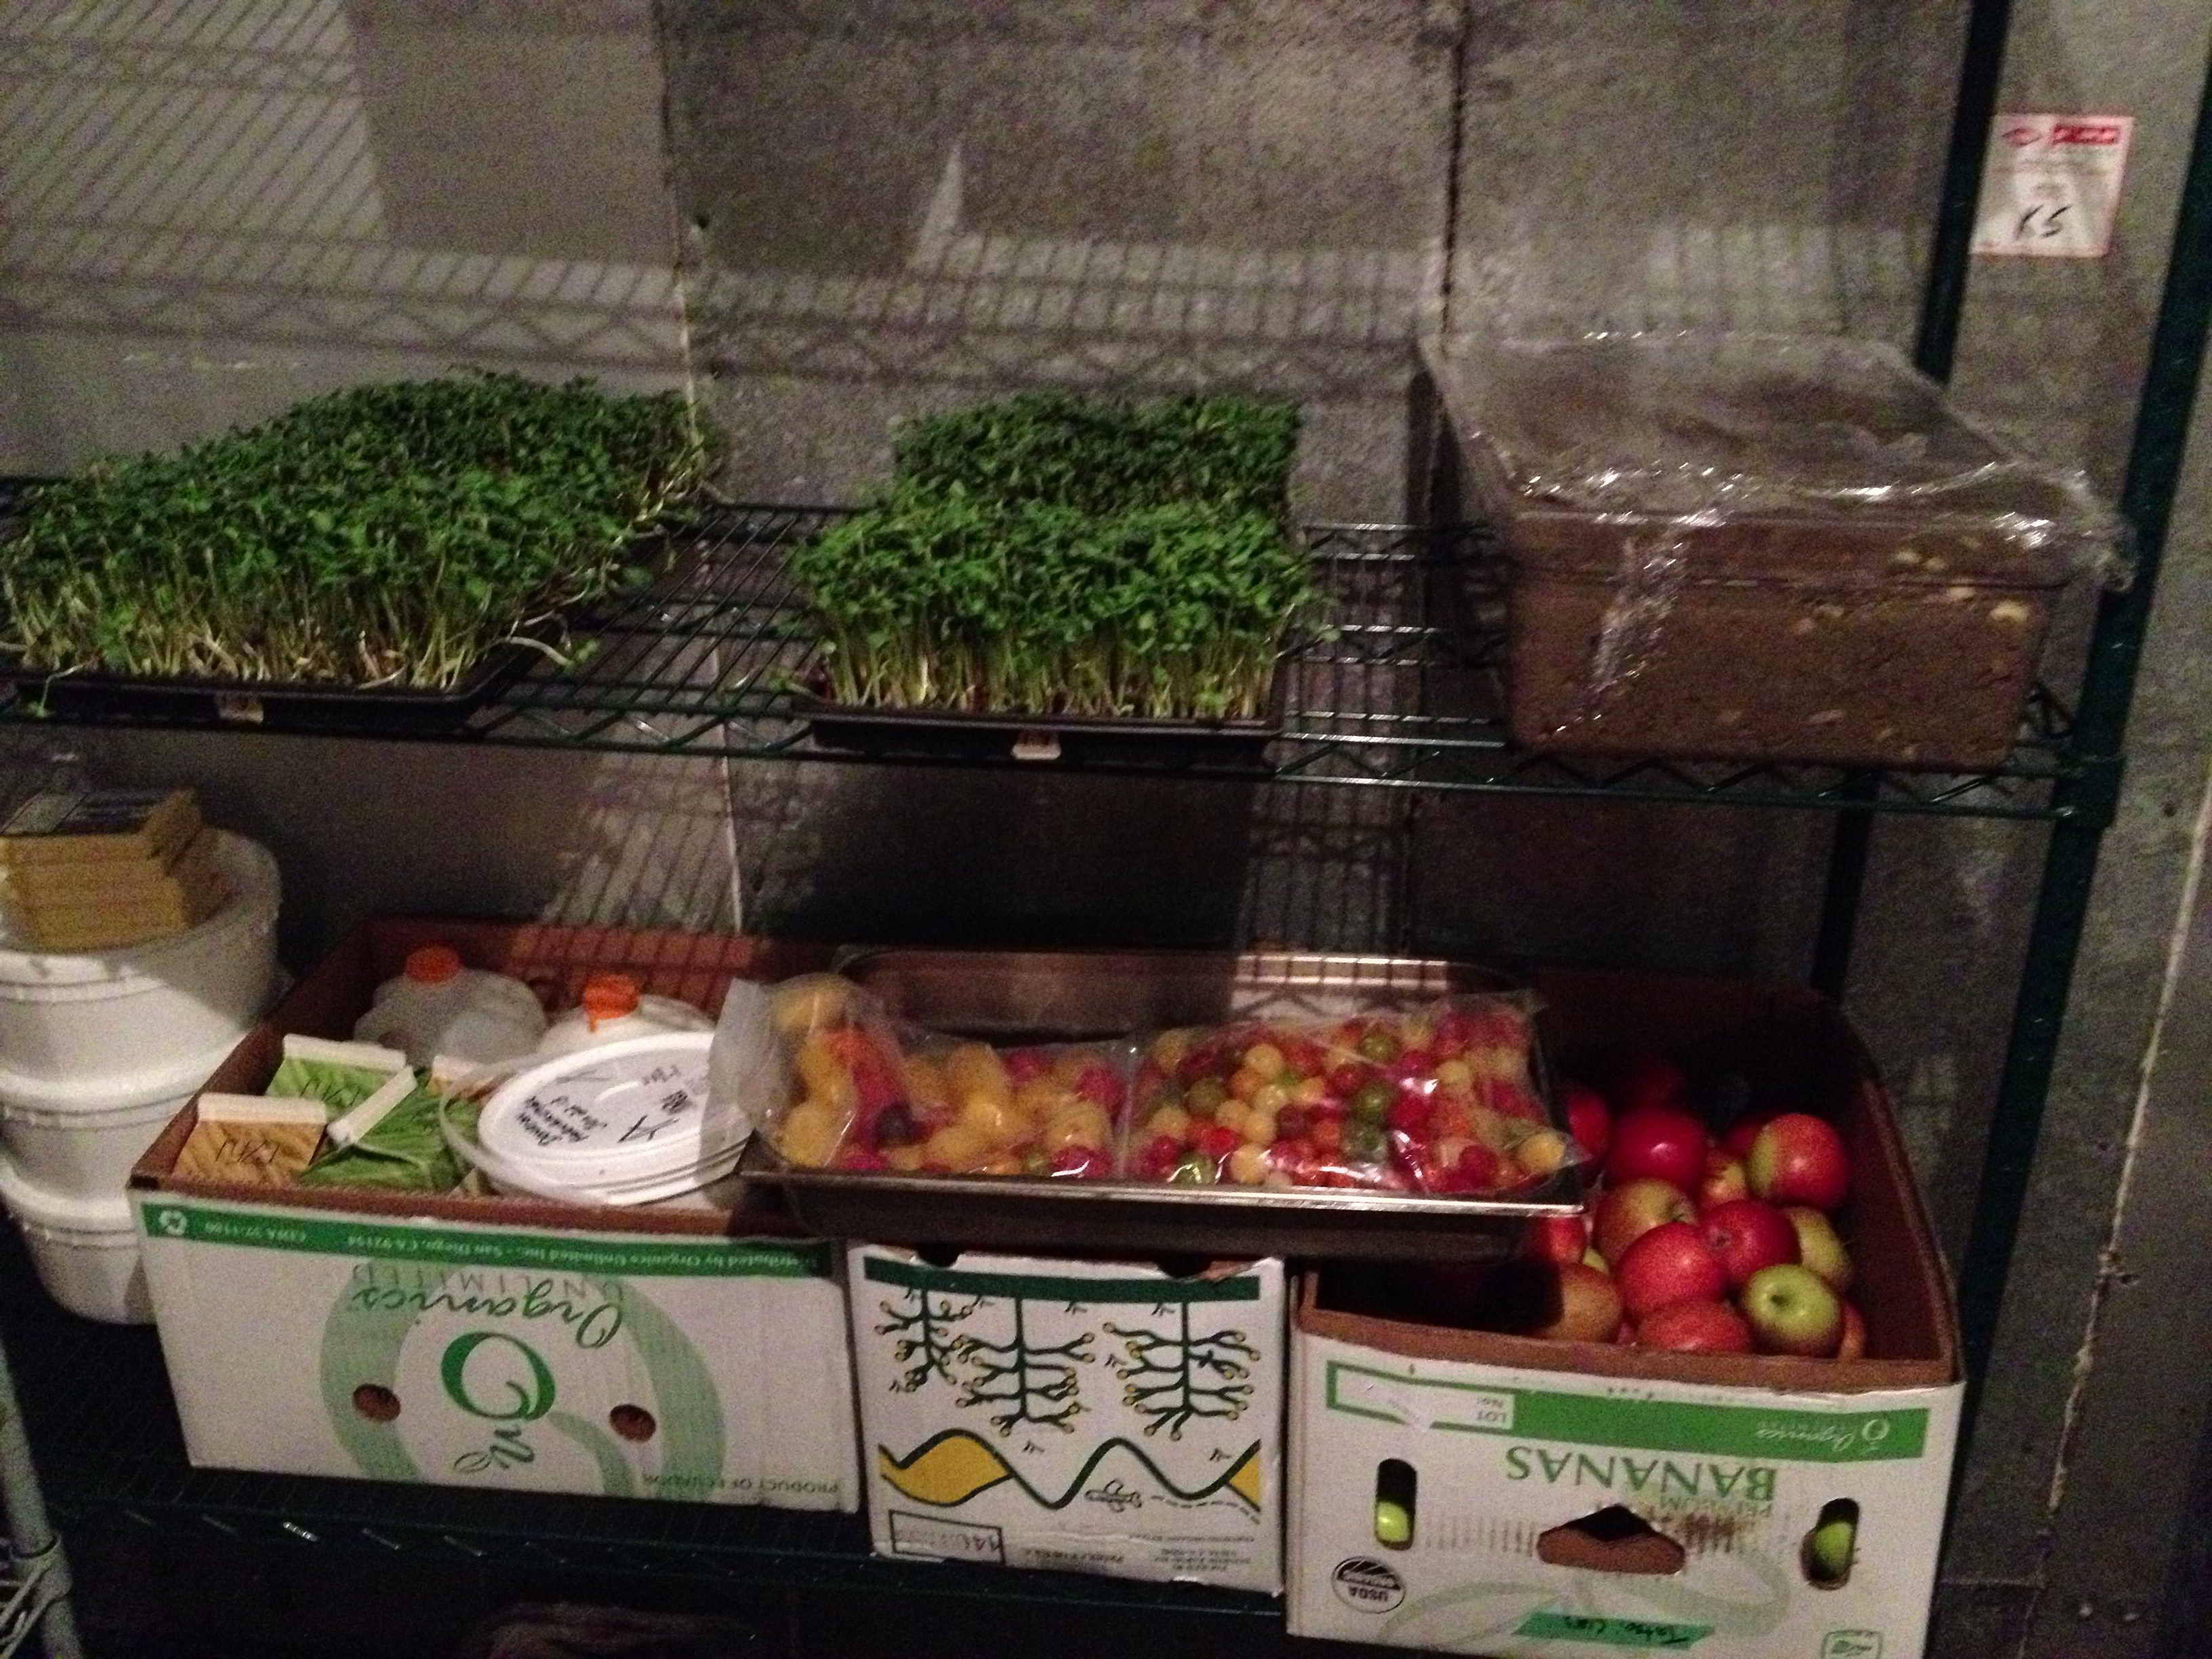 Micro-greens from Green City Acres, yogurt and cheese from Jerseyland Organics, apples from Urban Harvest, milk from Choices Markets.  These were just a few of our amazing food sponsors!